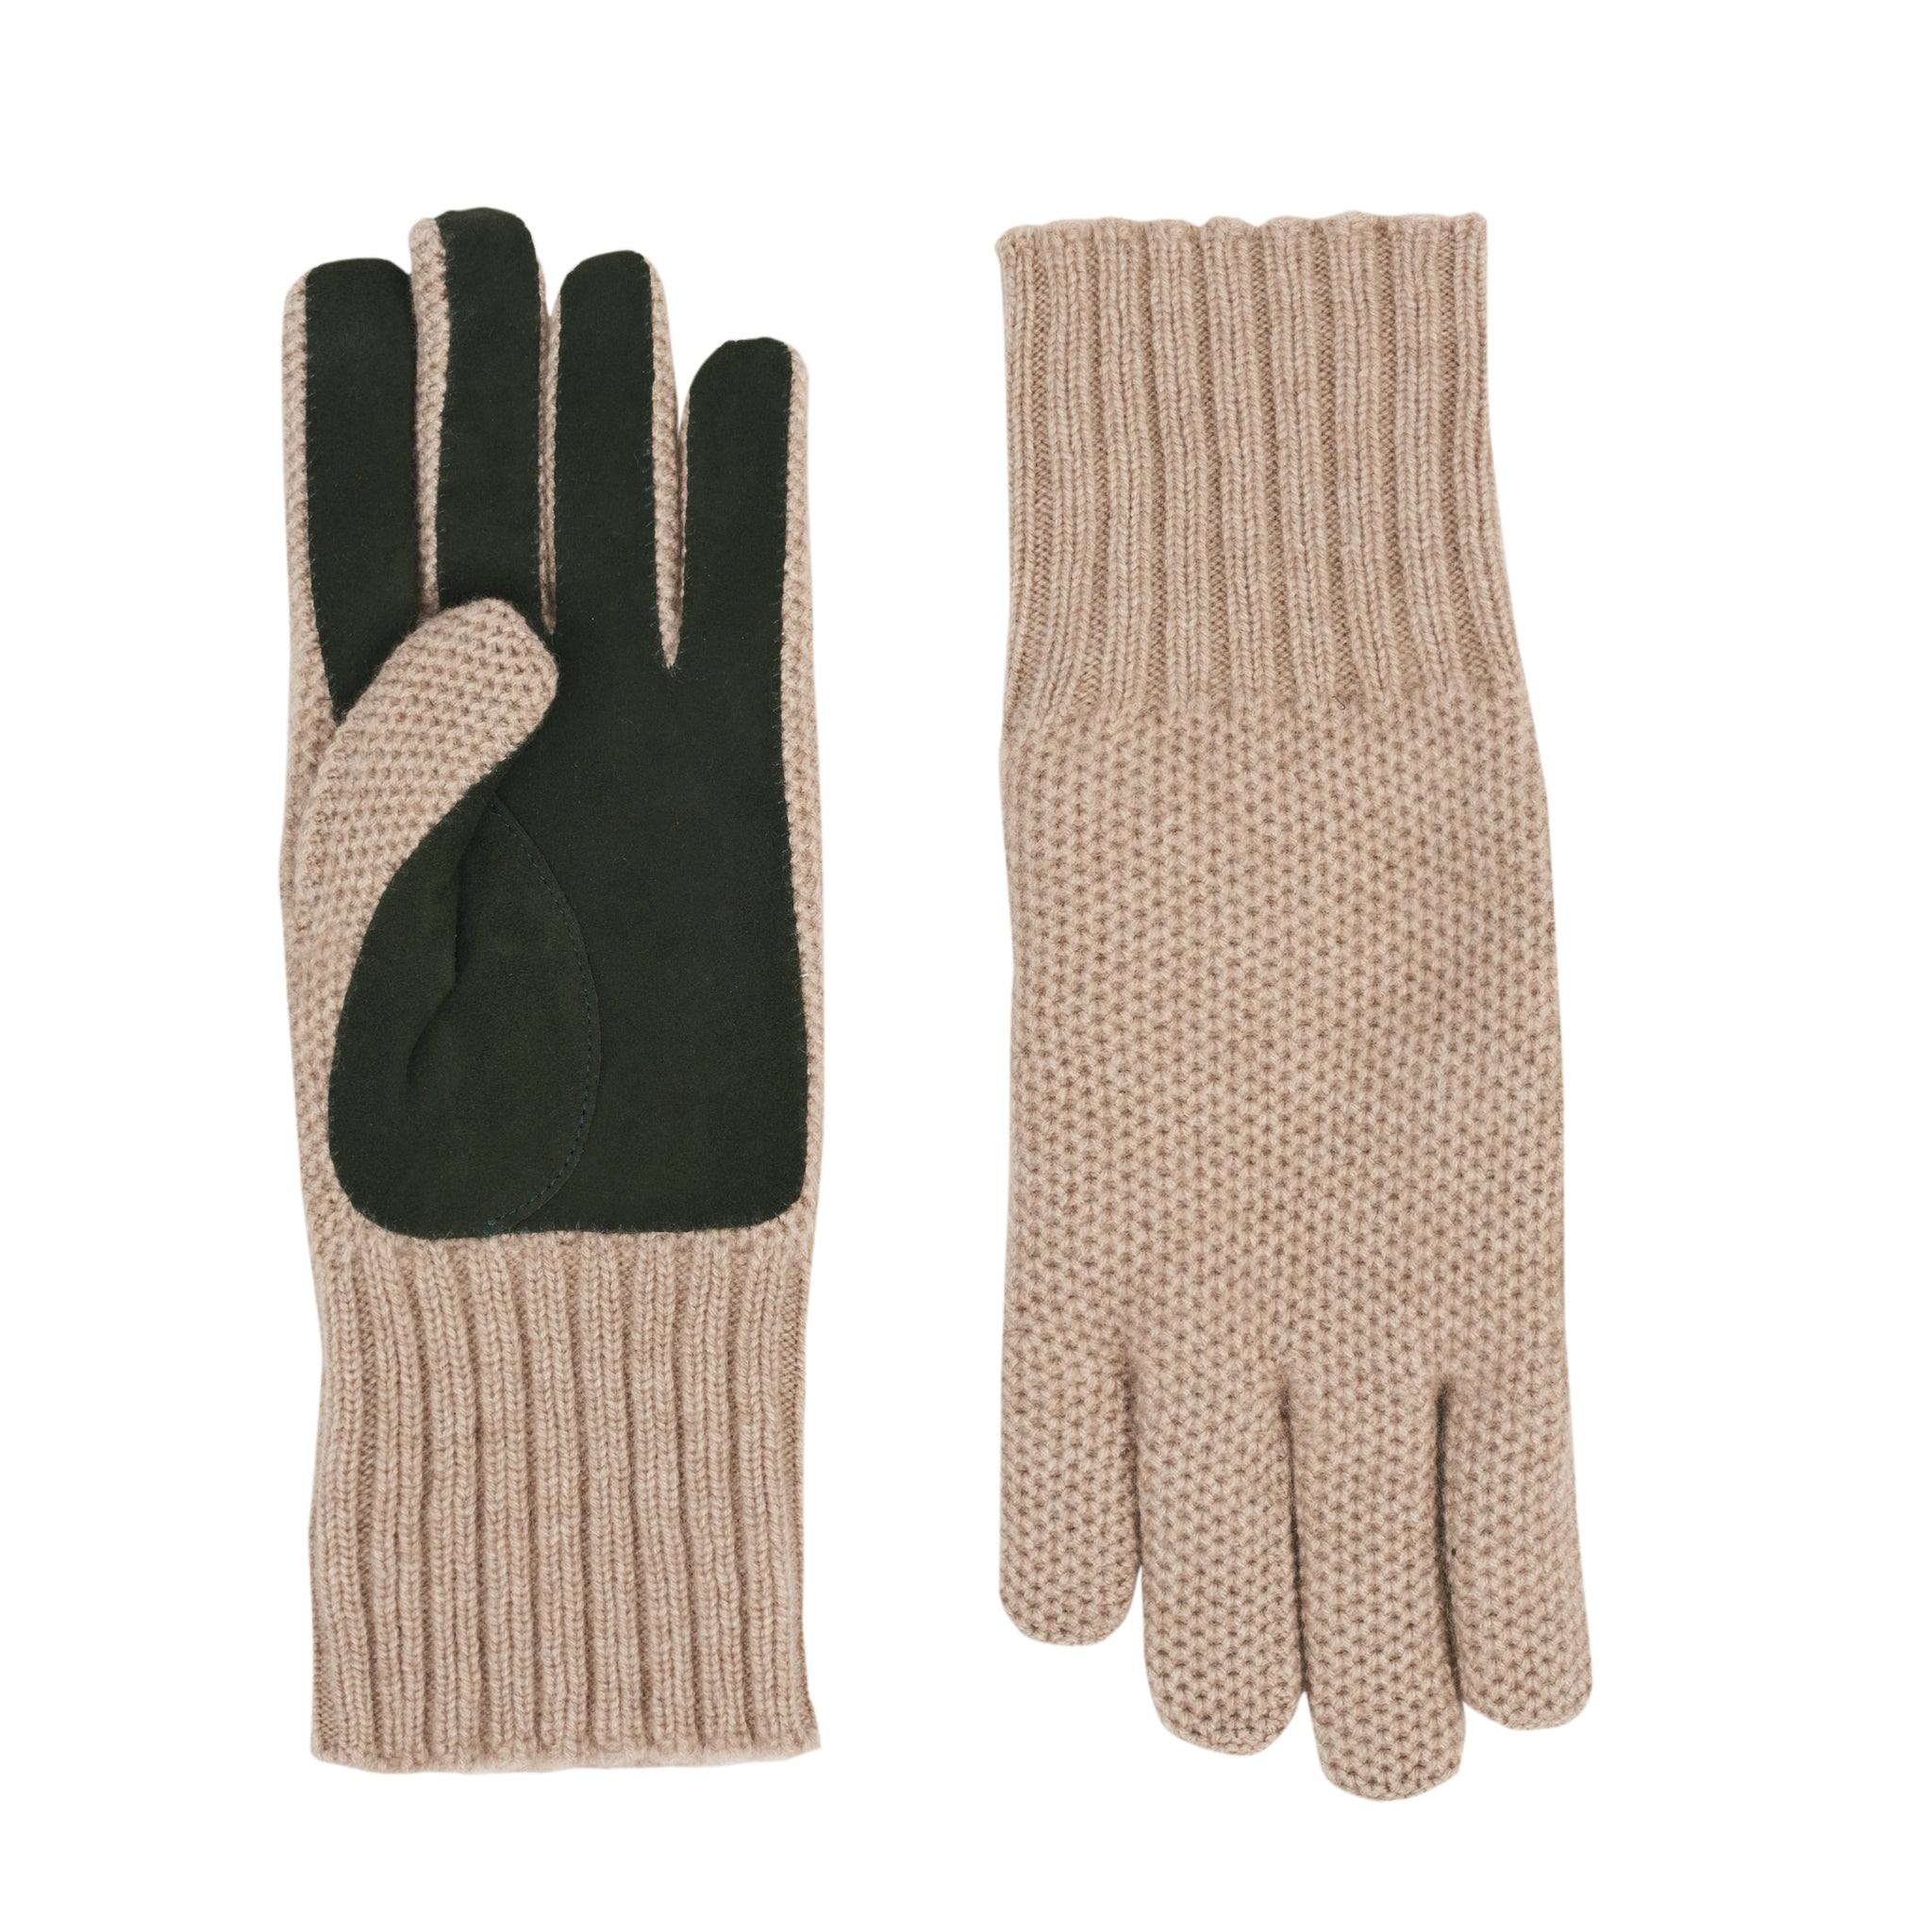 Guantes Cashmere Suede Beige Green M 8,5